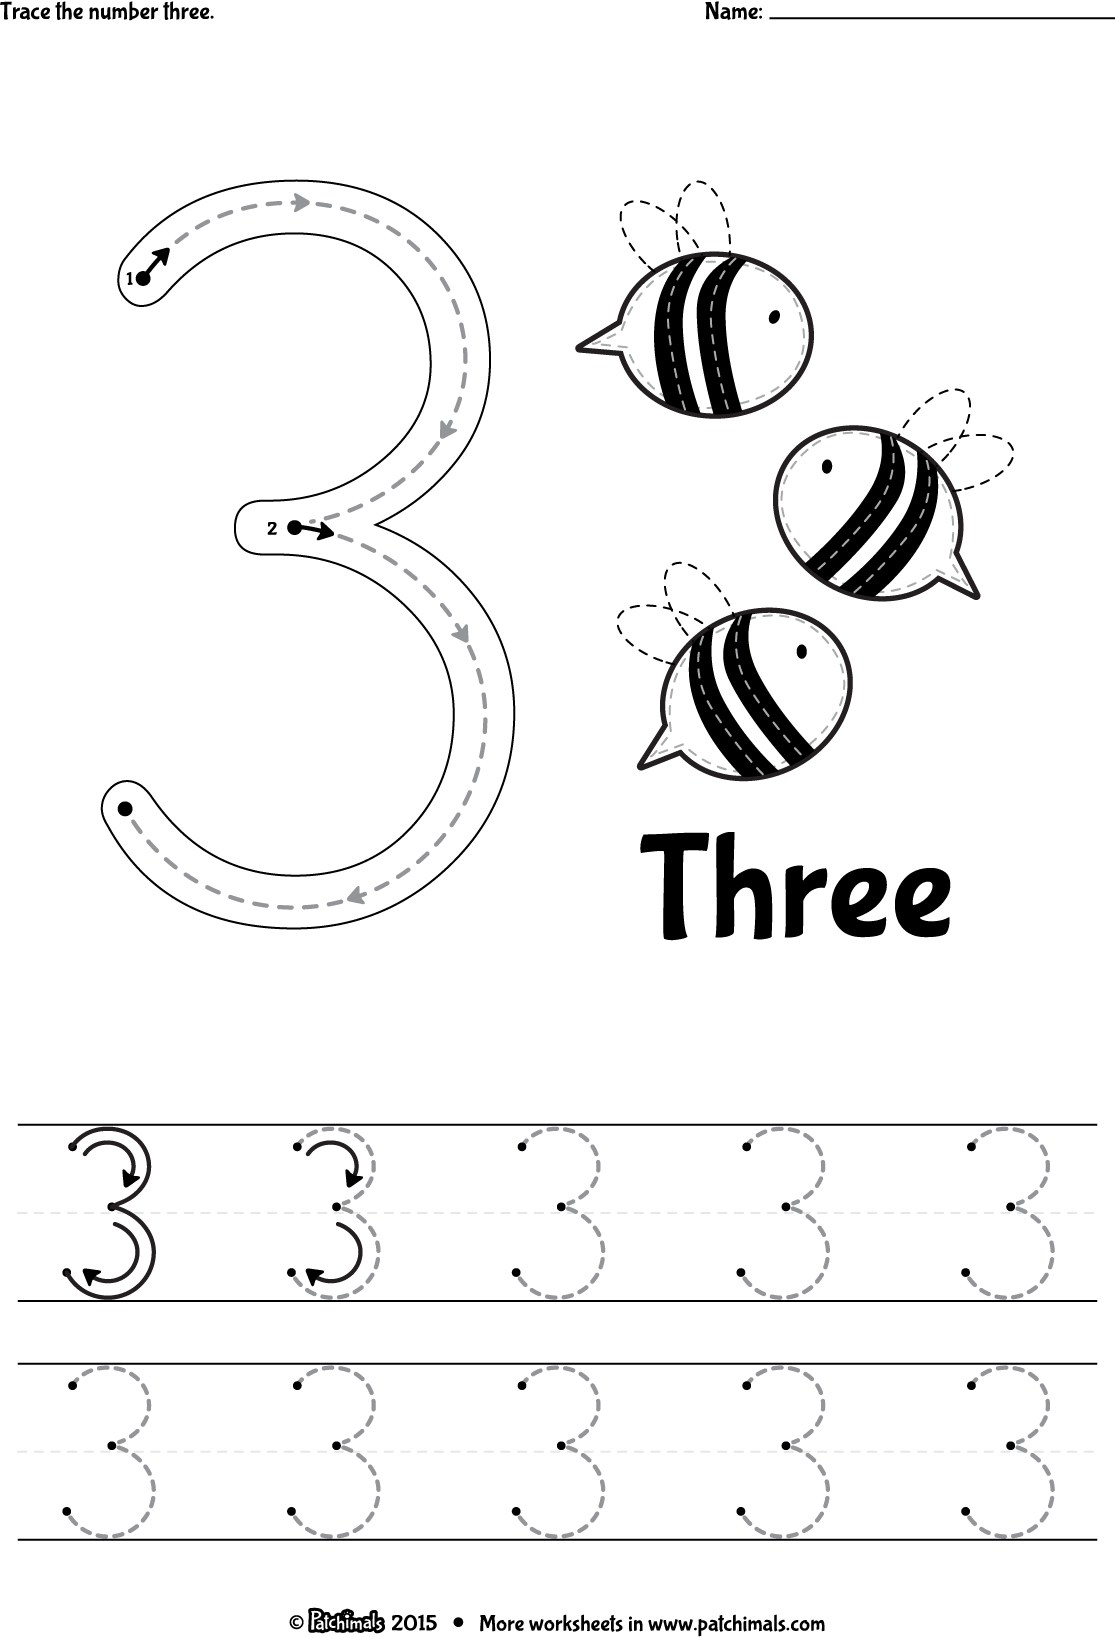 Patchimals - Educational And Cultural Contents For Children: Apps | Free Printable Number 3 Worksheets